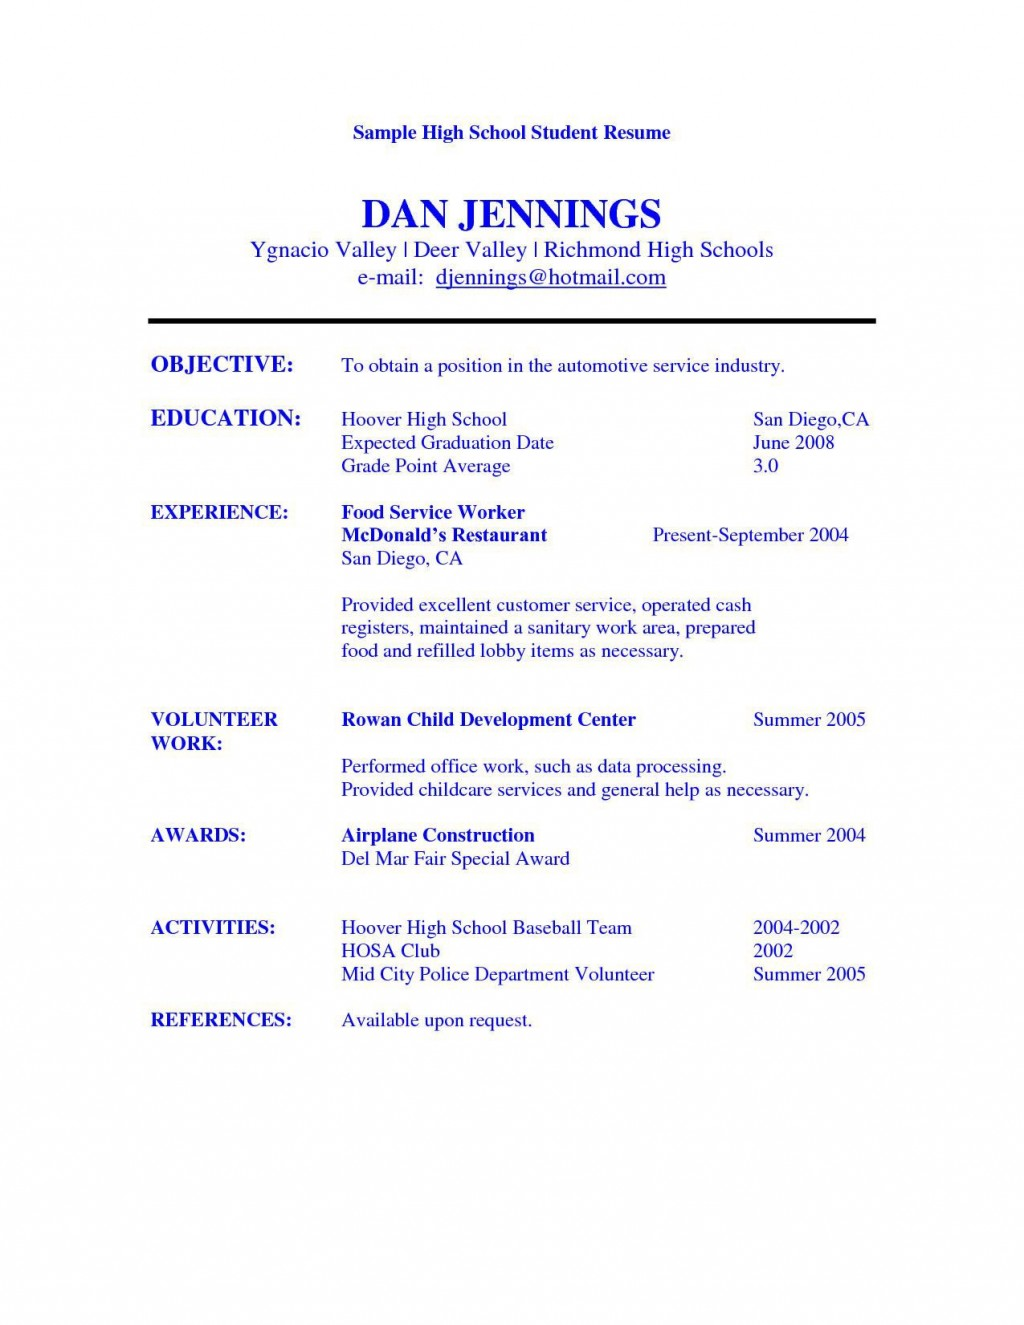 005 Best Resume Template High School Student Image  Students Easy For Curriculum Vitae Format Pdf Free DownloadableLarge